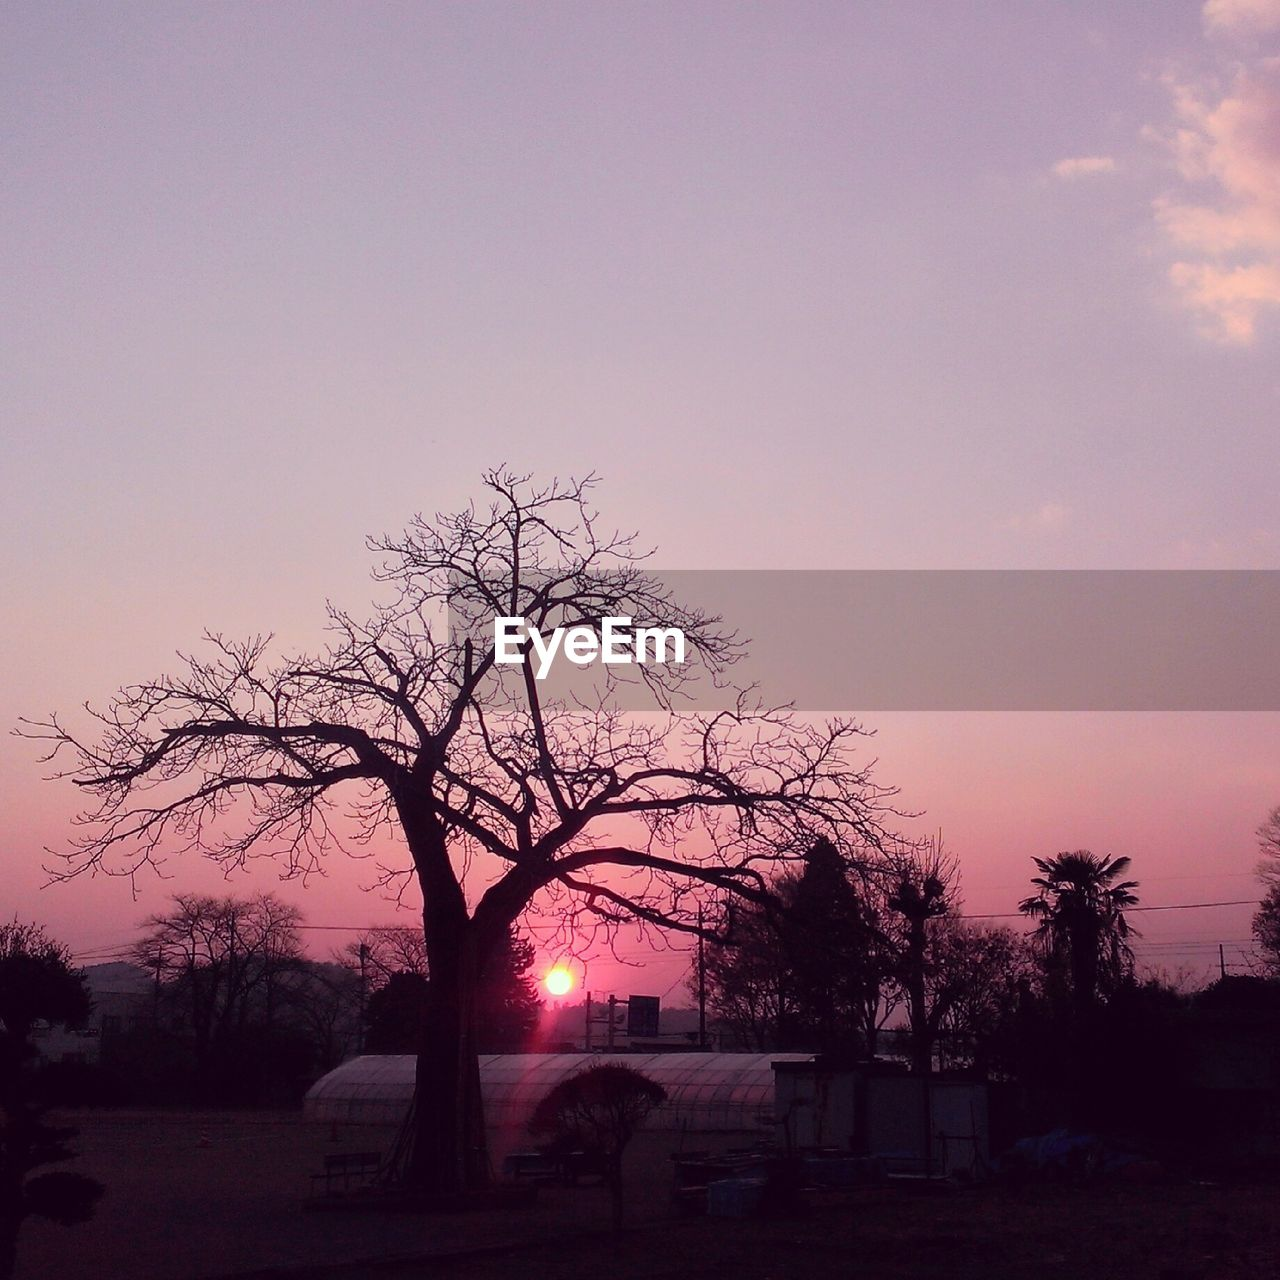 tree, sunset, bare tree, nature, tranquility, sky, silhouette, outdoors, no people, beauty in nature, clear sky, scenics, landscape, day